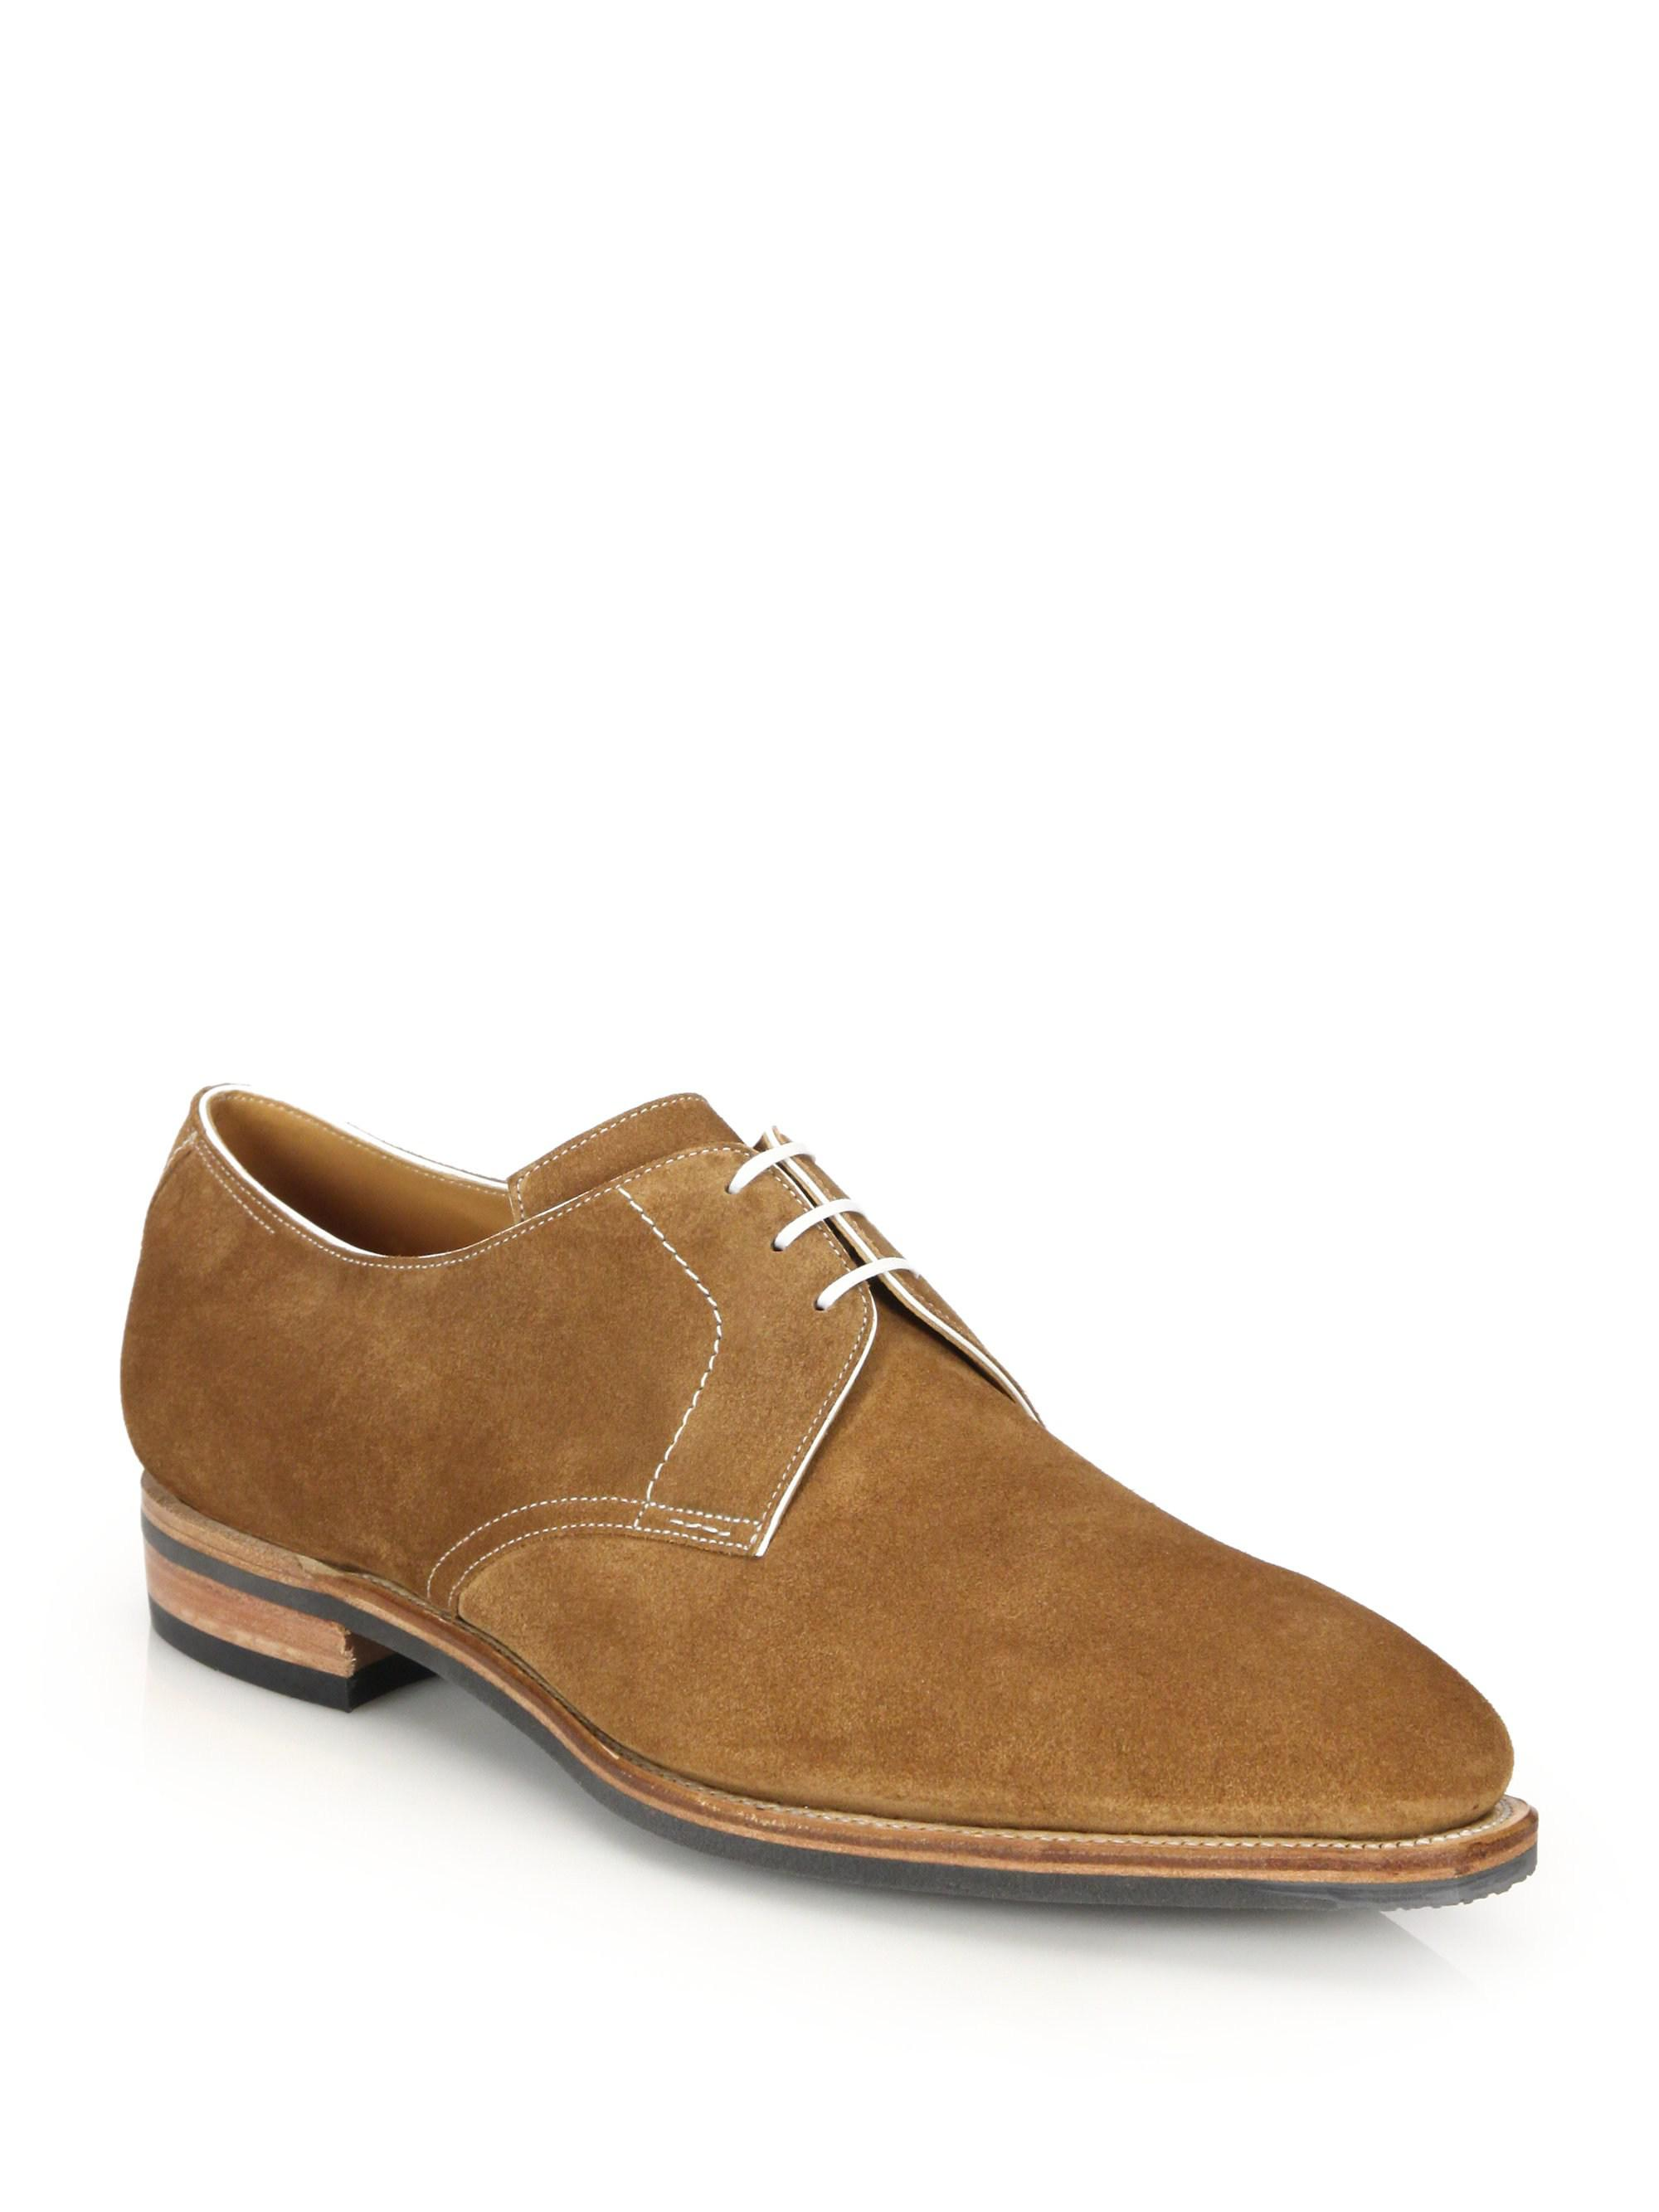 CORTHAY Sergio Pullman Lace-Up Suede Derby Shoes